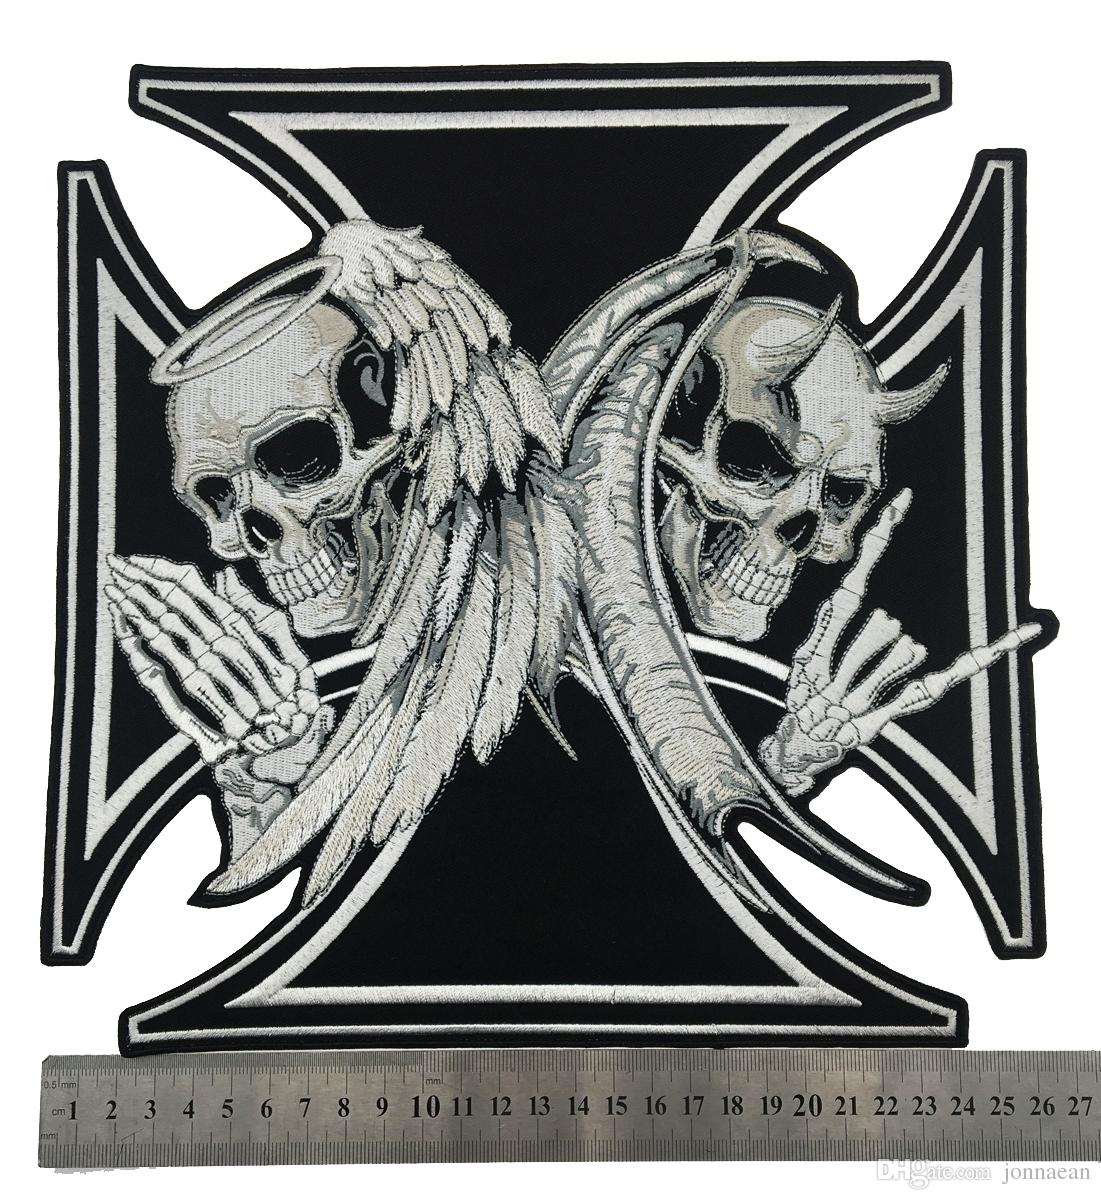 NEW ARRIVAL LARGE SIZE CROSS DEATH DEVIL SKULL PATCH ANGEL SKULL MOTORCYCLE BIKER EMBROIDERED BACK PATCH IRON ON SEW ON